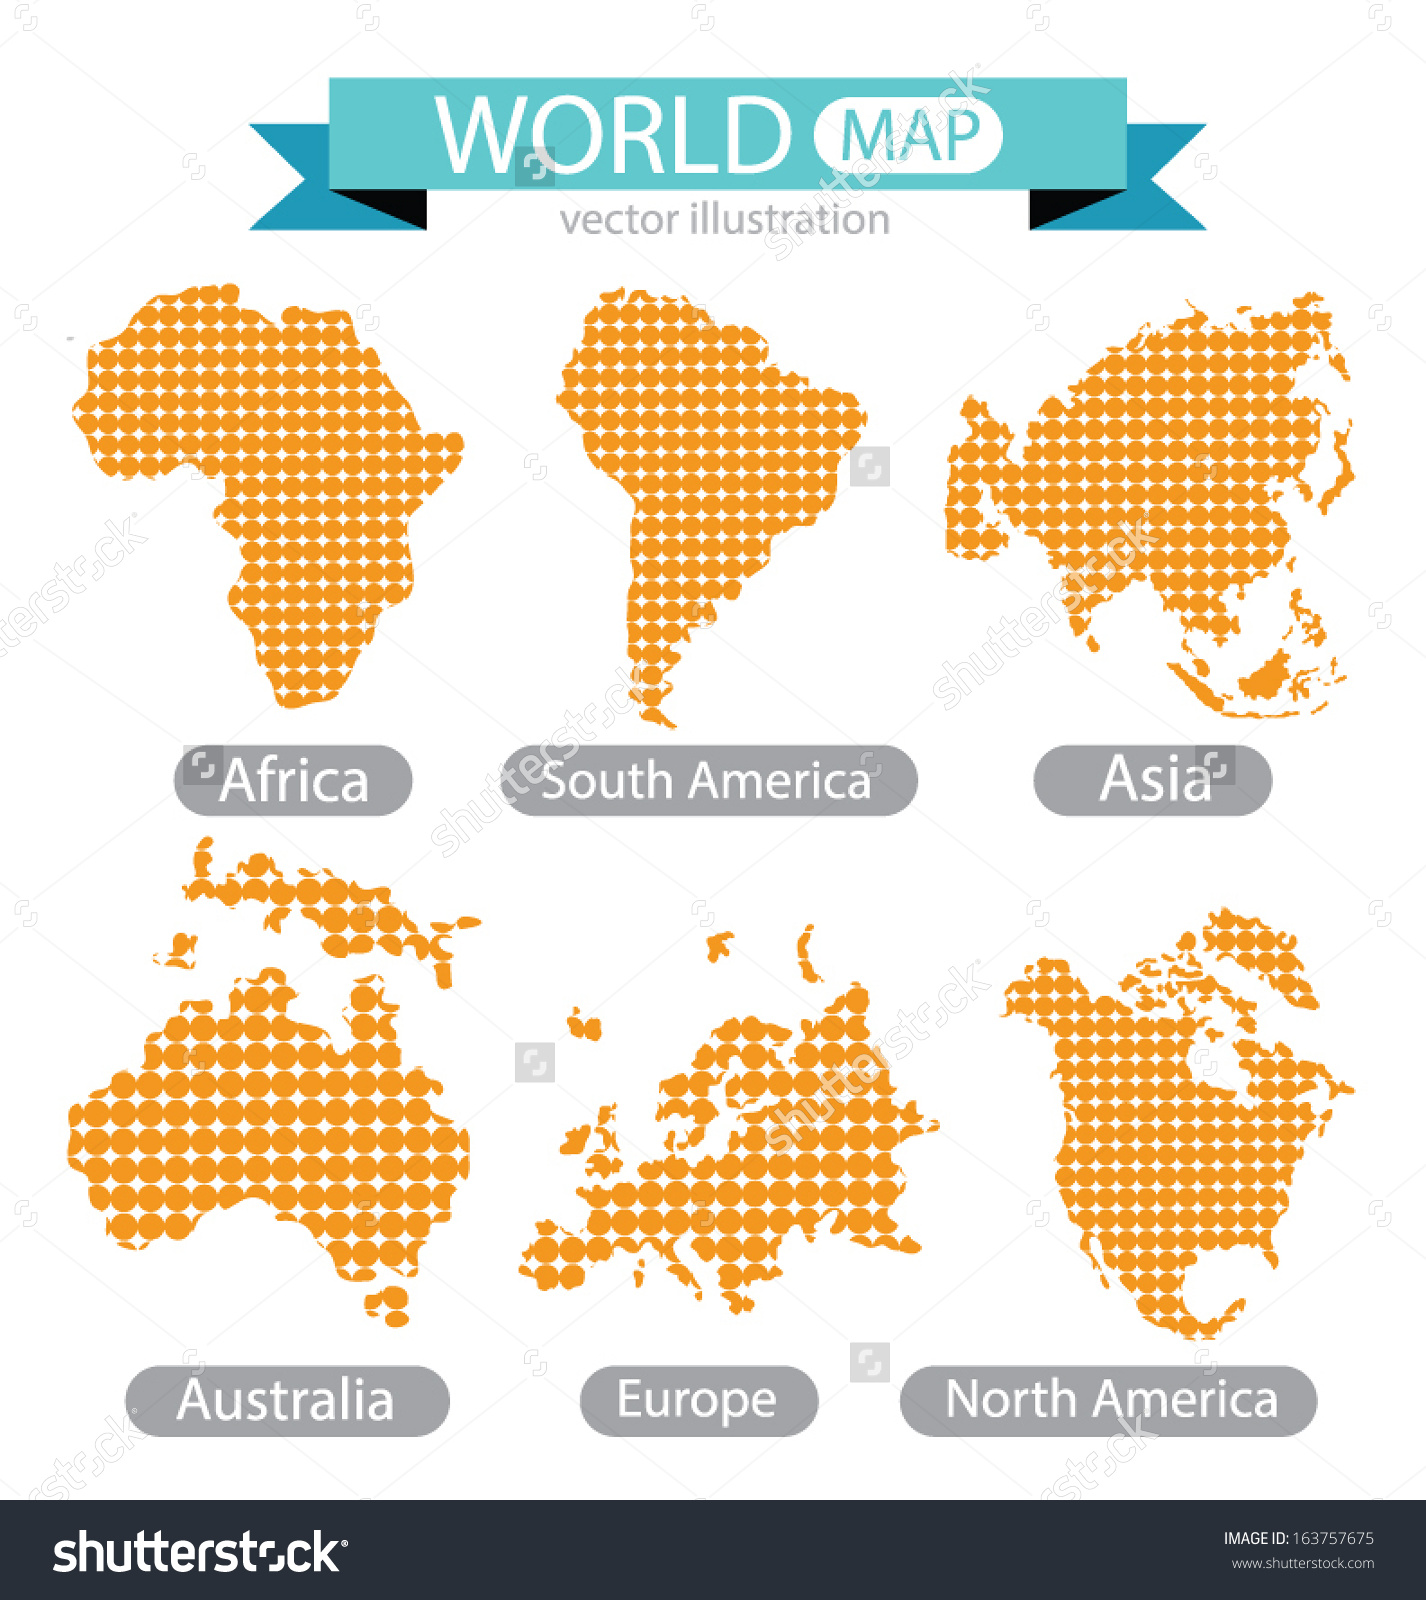 Southern europe clipart clipground africa asia australia europe north america stock vector 163757675 europe north america south america world map gumiabroncs Choice Image